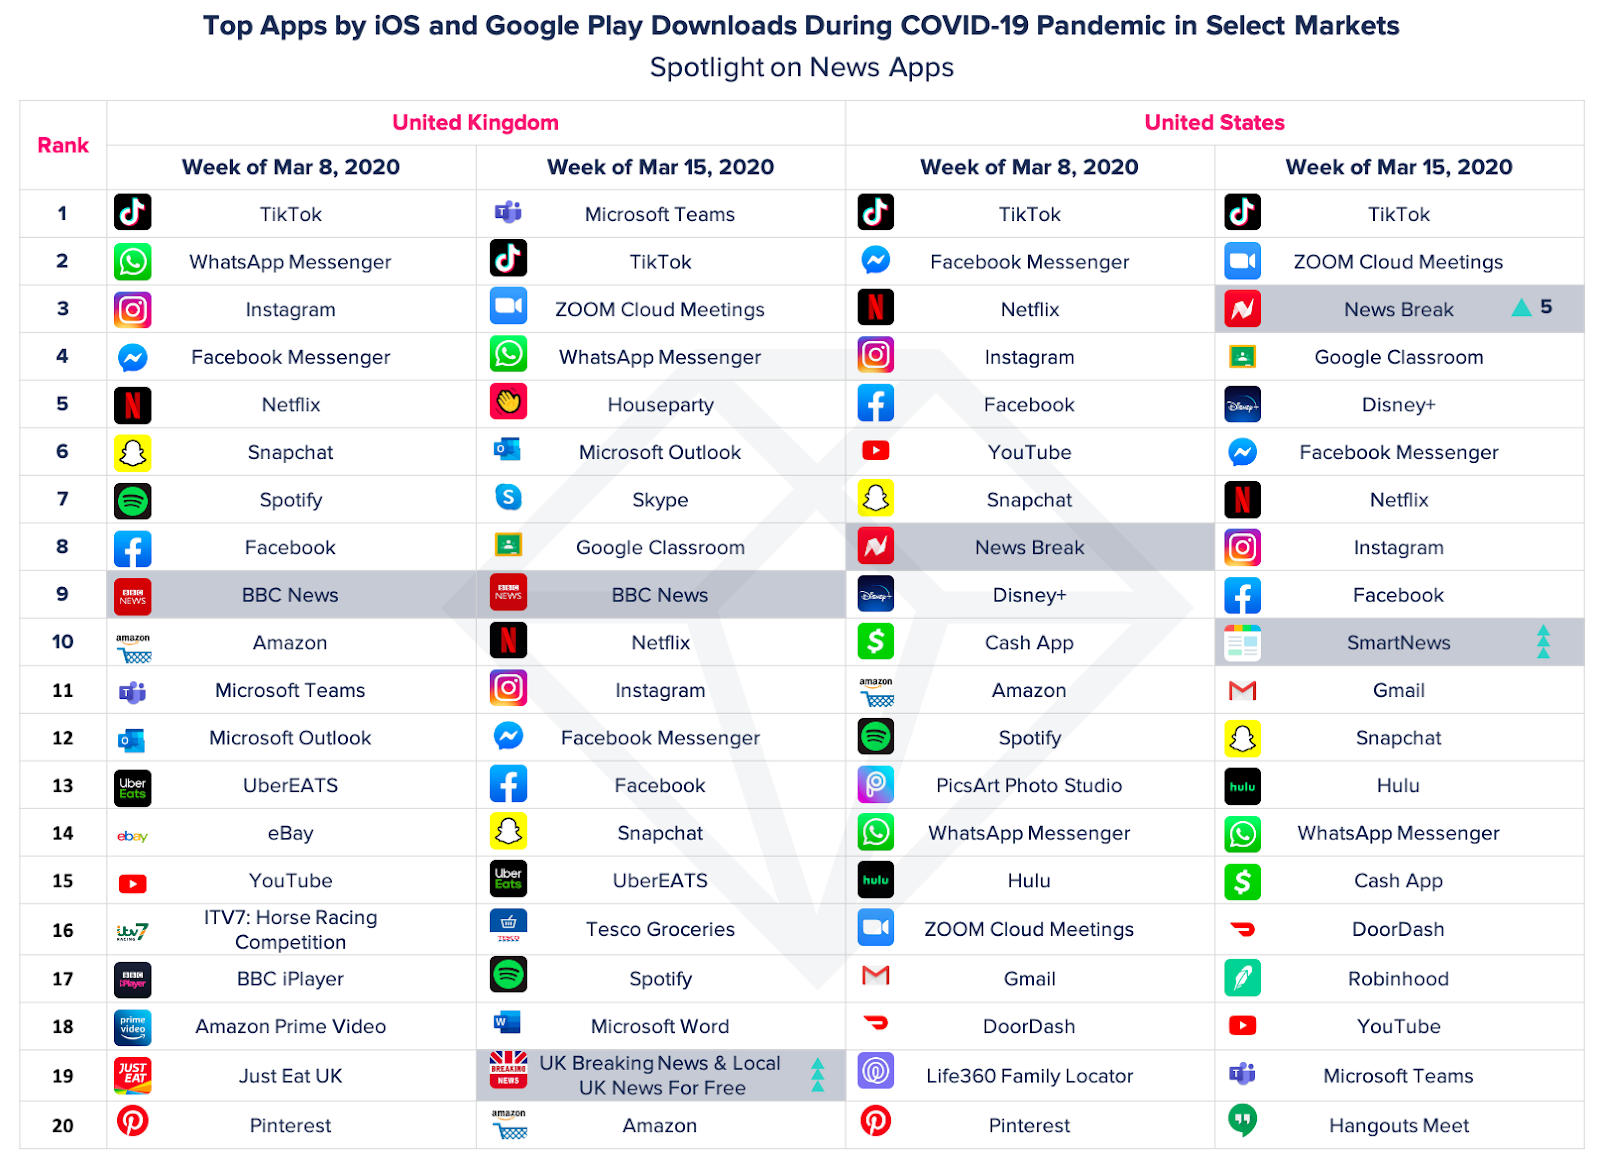 Top apps by iOS and Google Play downloads during Coronavirus Pandemic in select markets